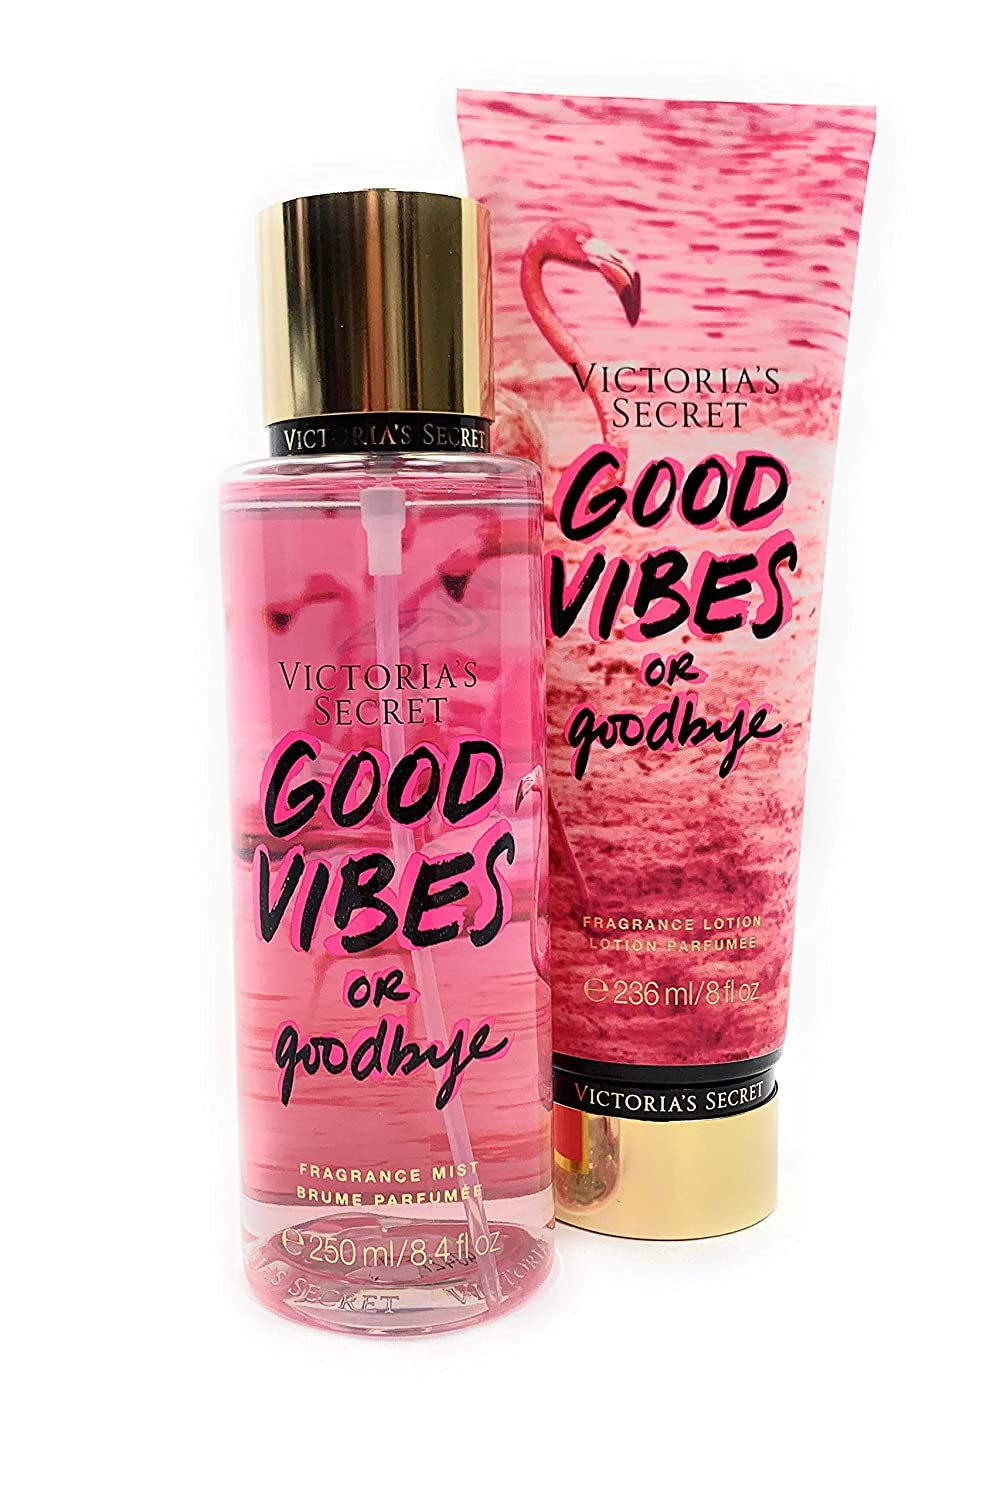 Victoria's Secret Good Vibes or Good Bye Body Mist and Fragrance Lotion Limited Edition Set